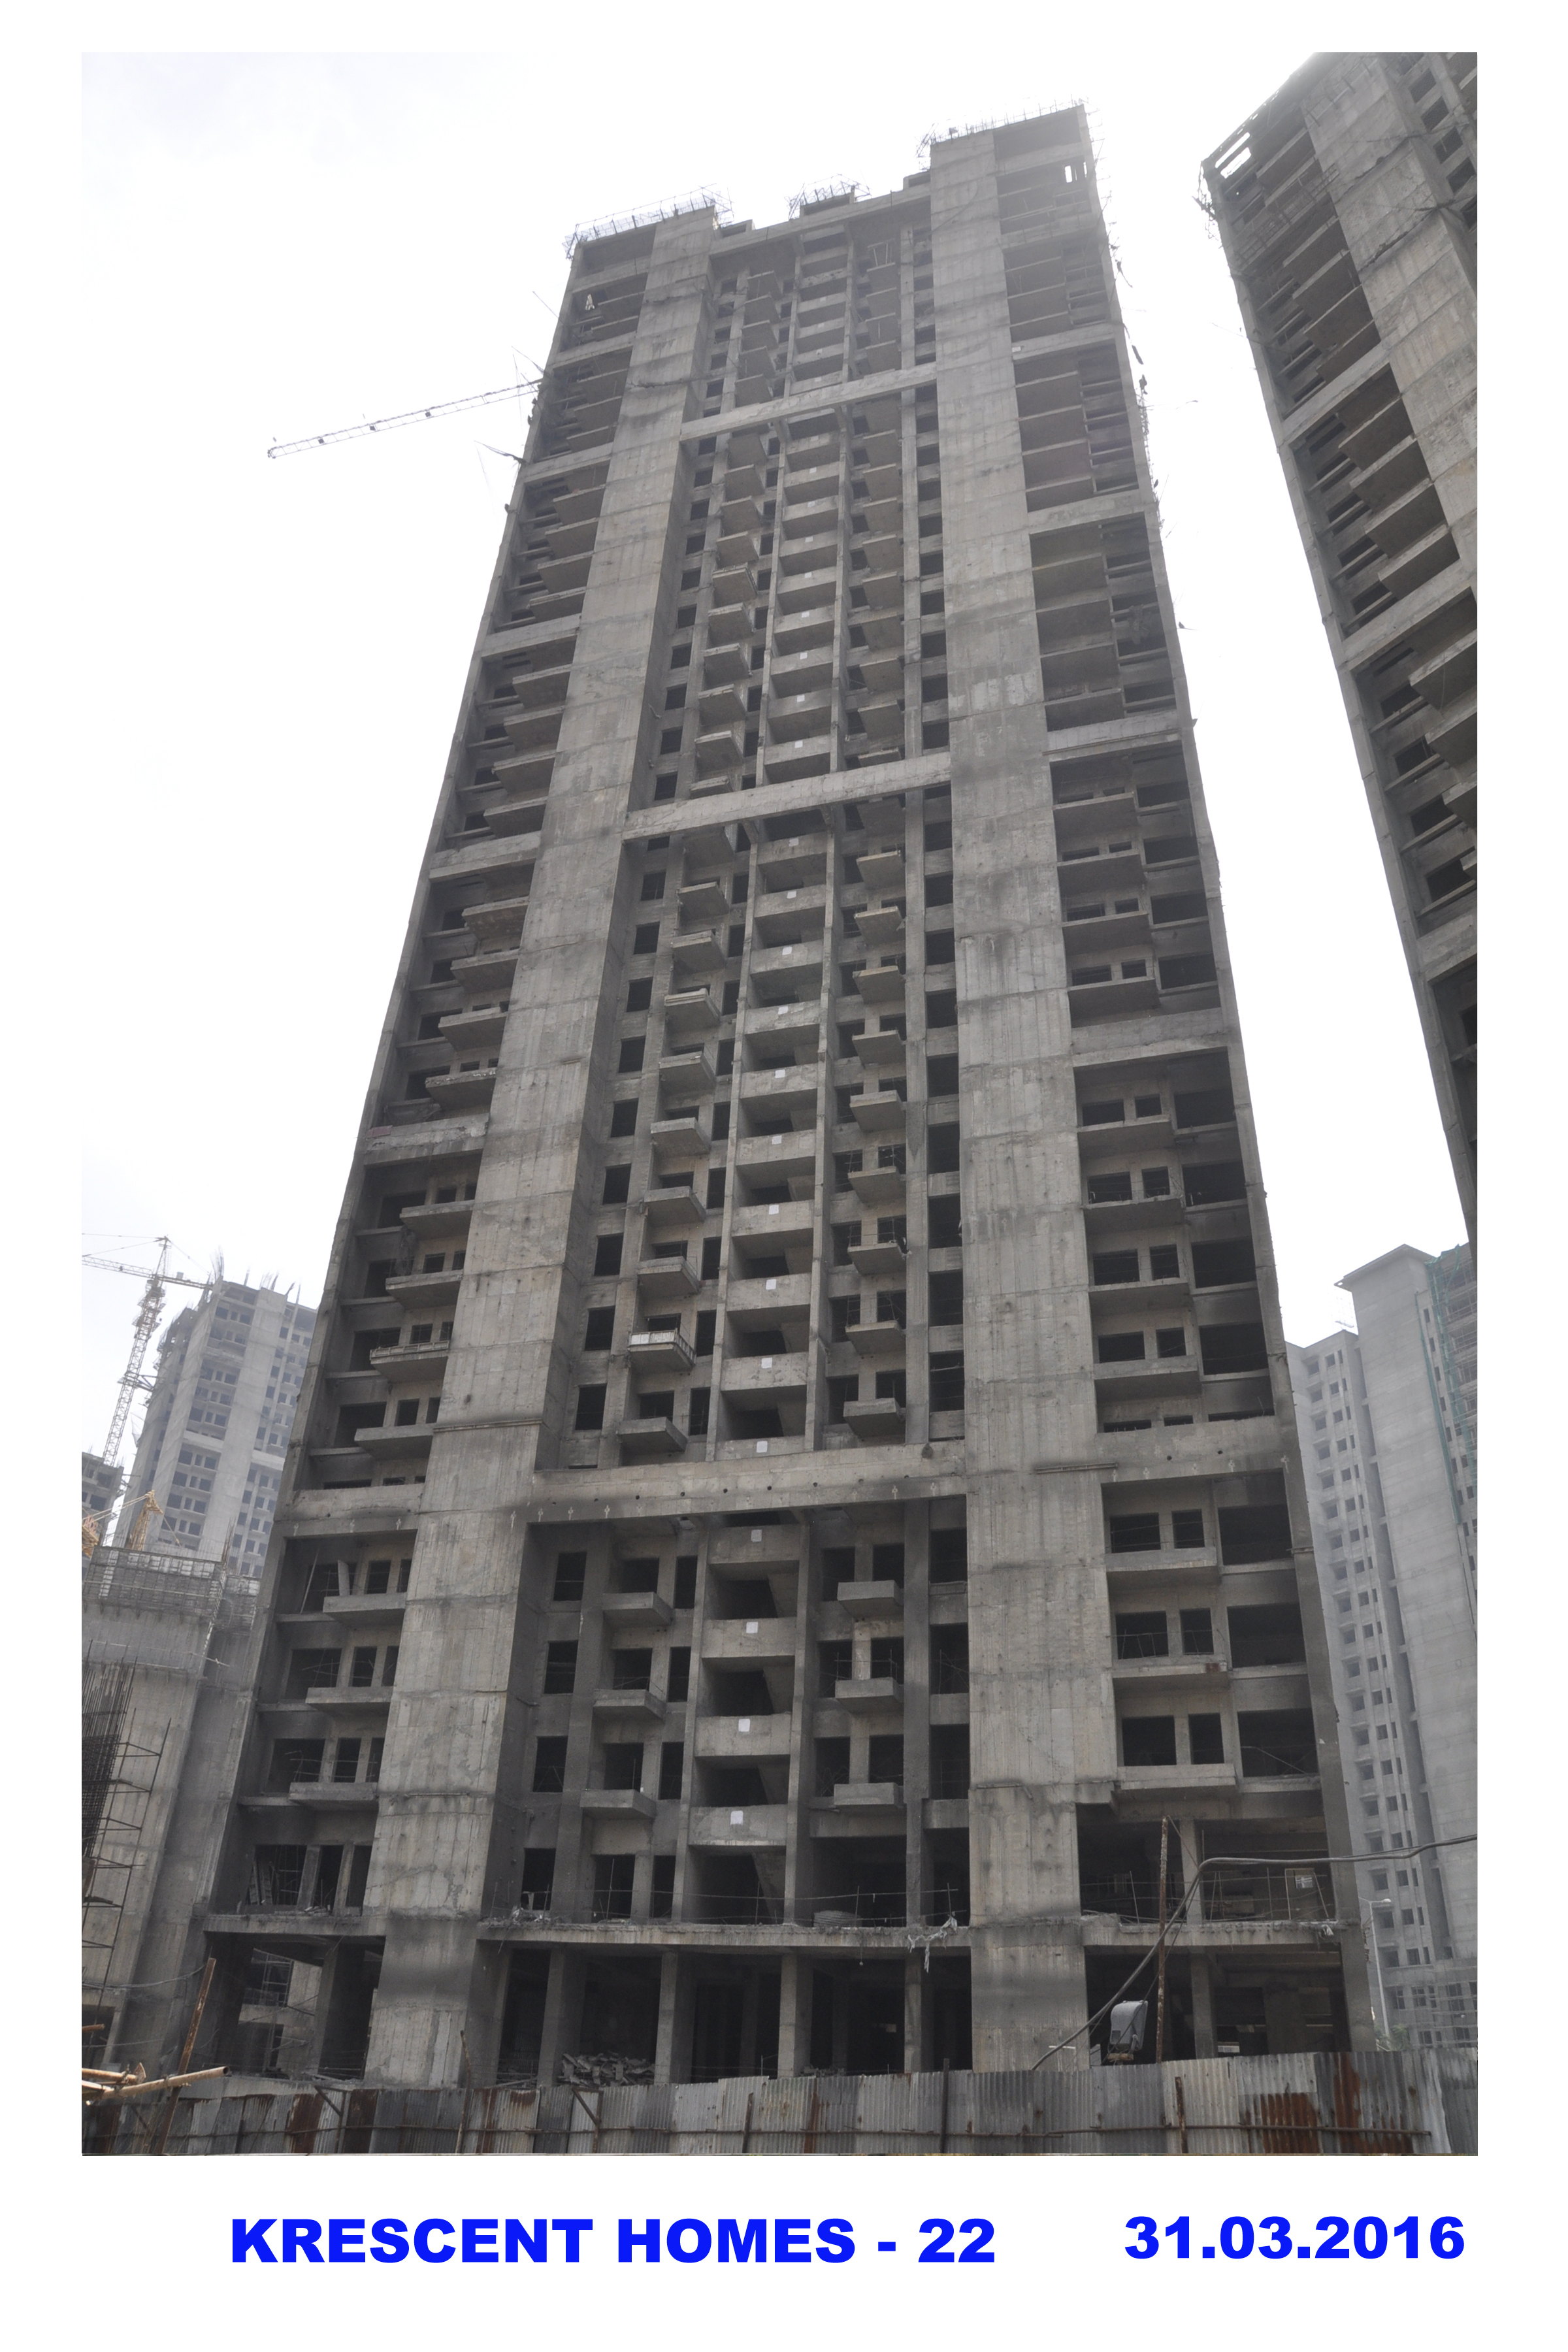 Krescent Homes Tower - 22